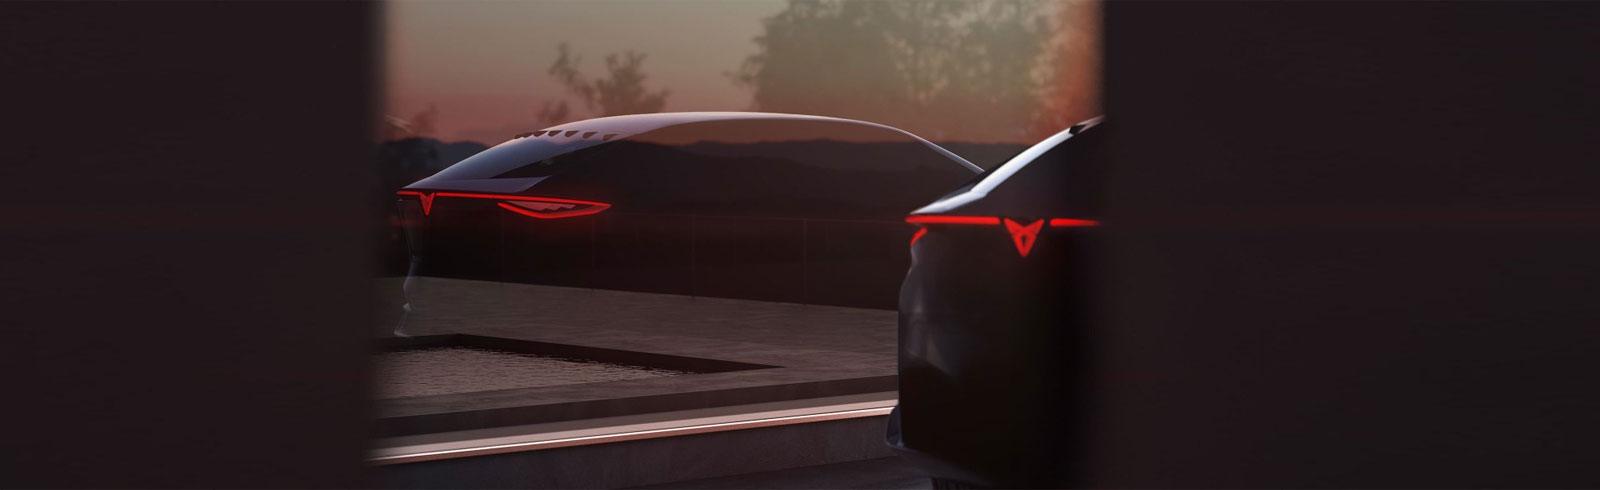 SEAT teases an all-electric Cupra concept model